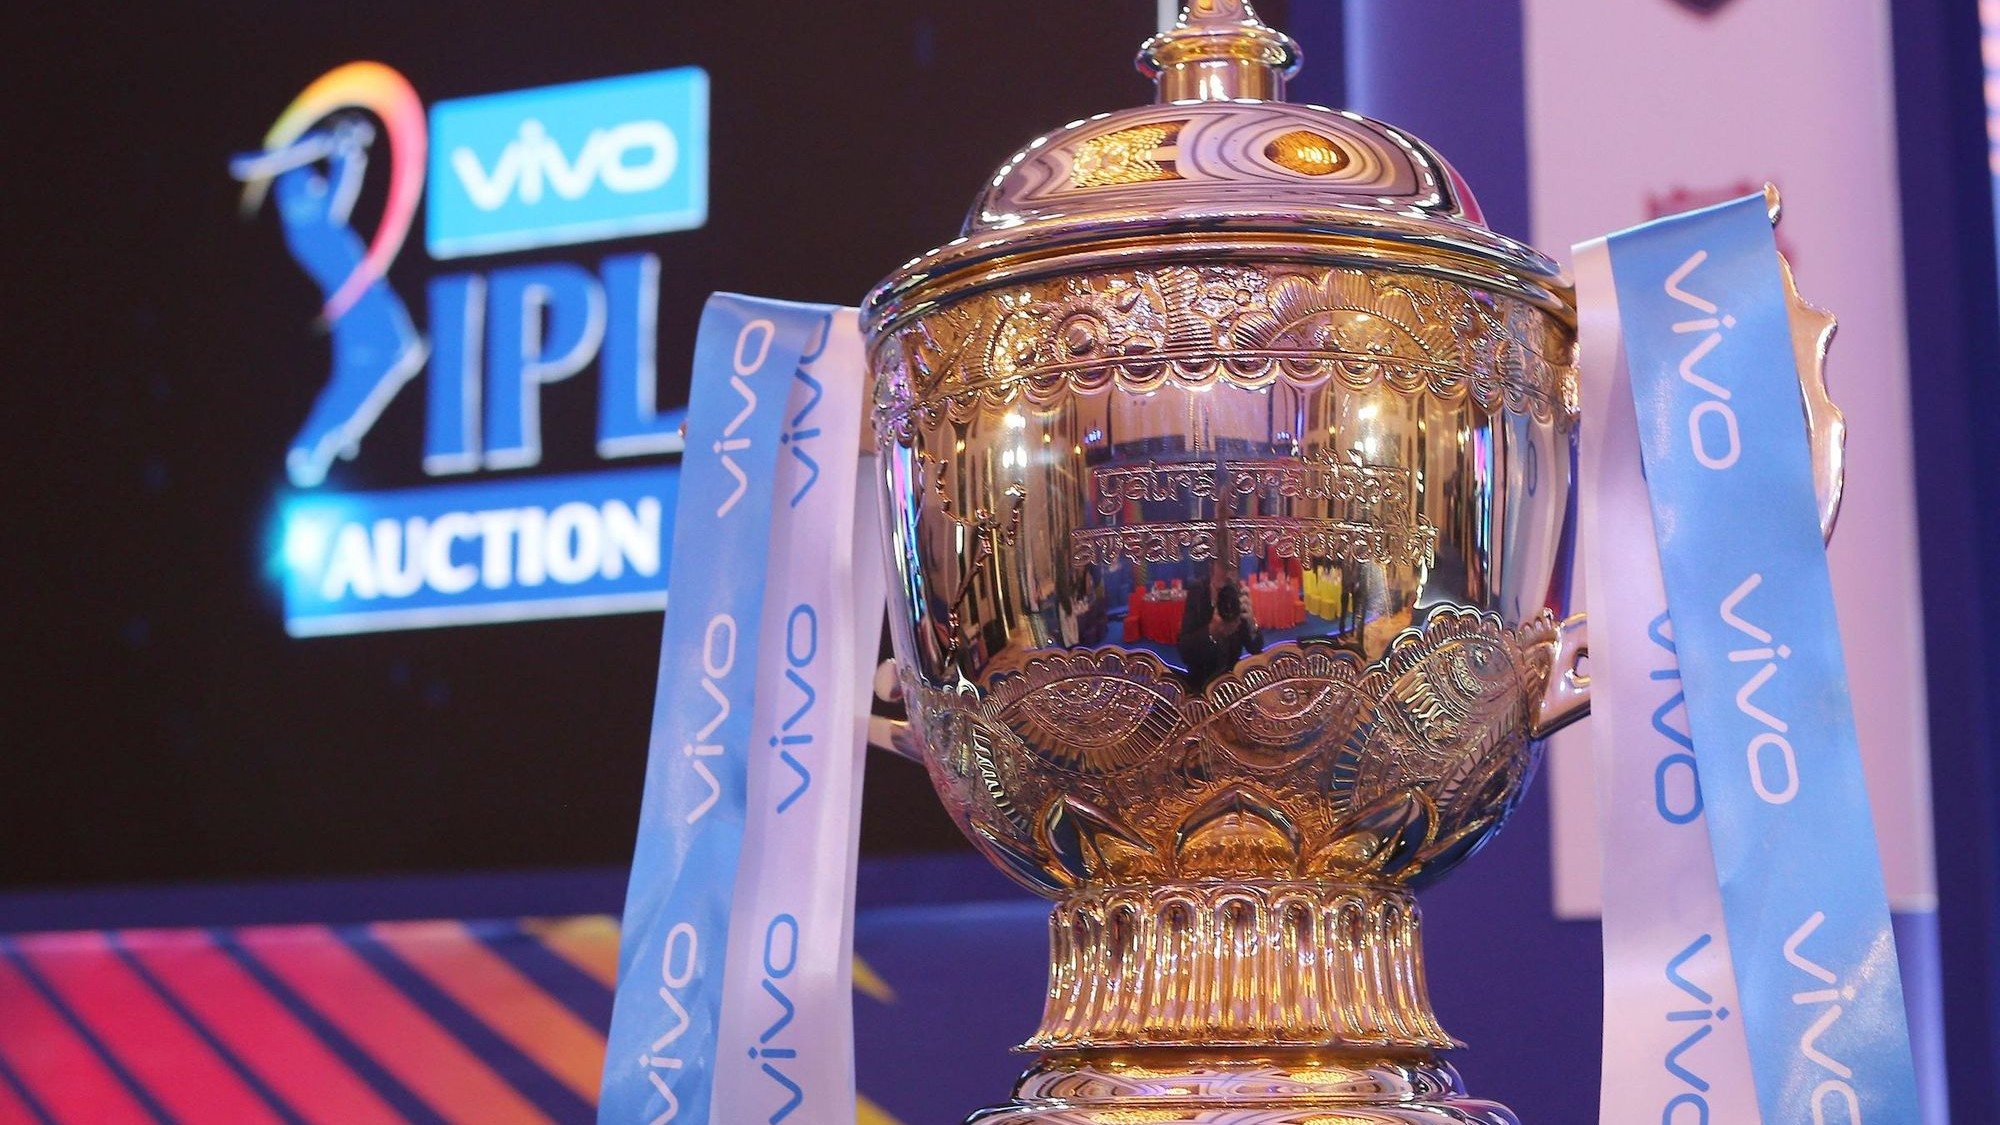 IPL 2020: BCCI has not taken a decision yet on the future of IPL 13, as per sources